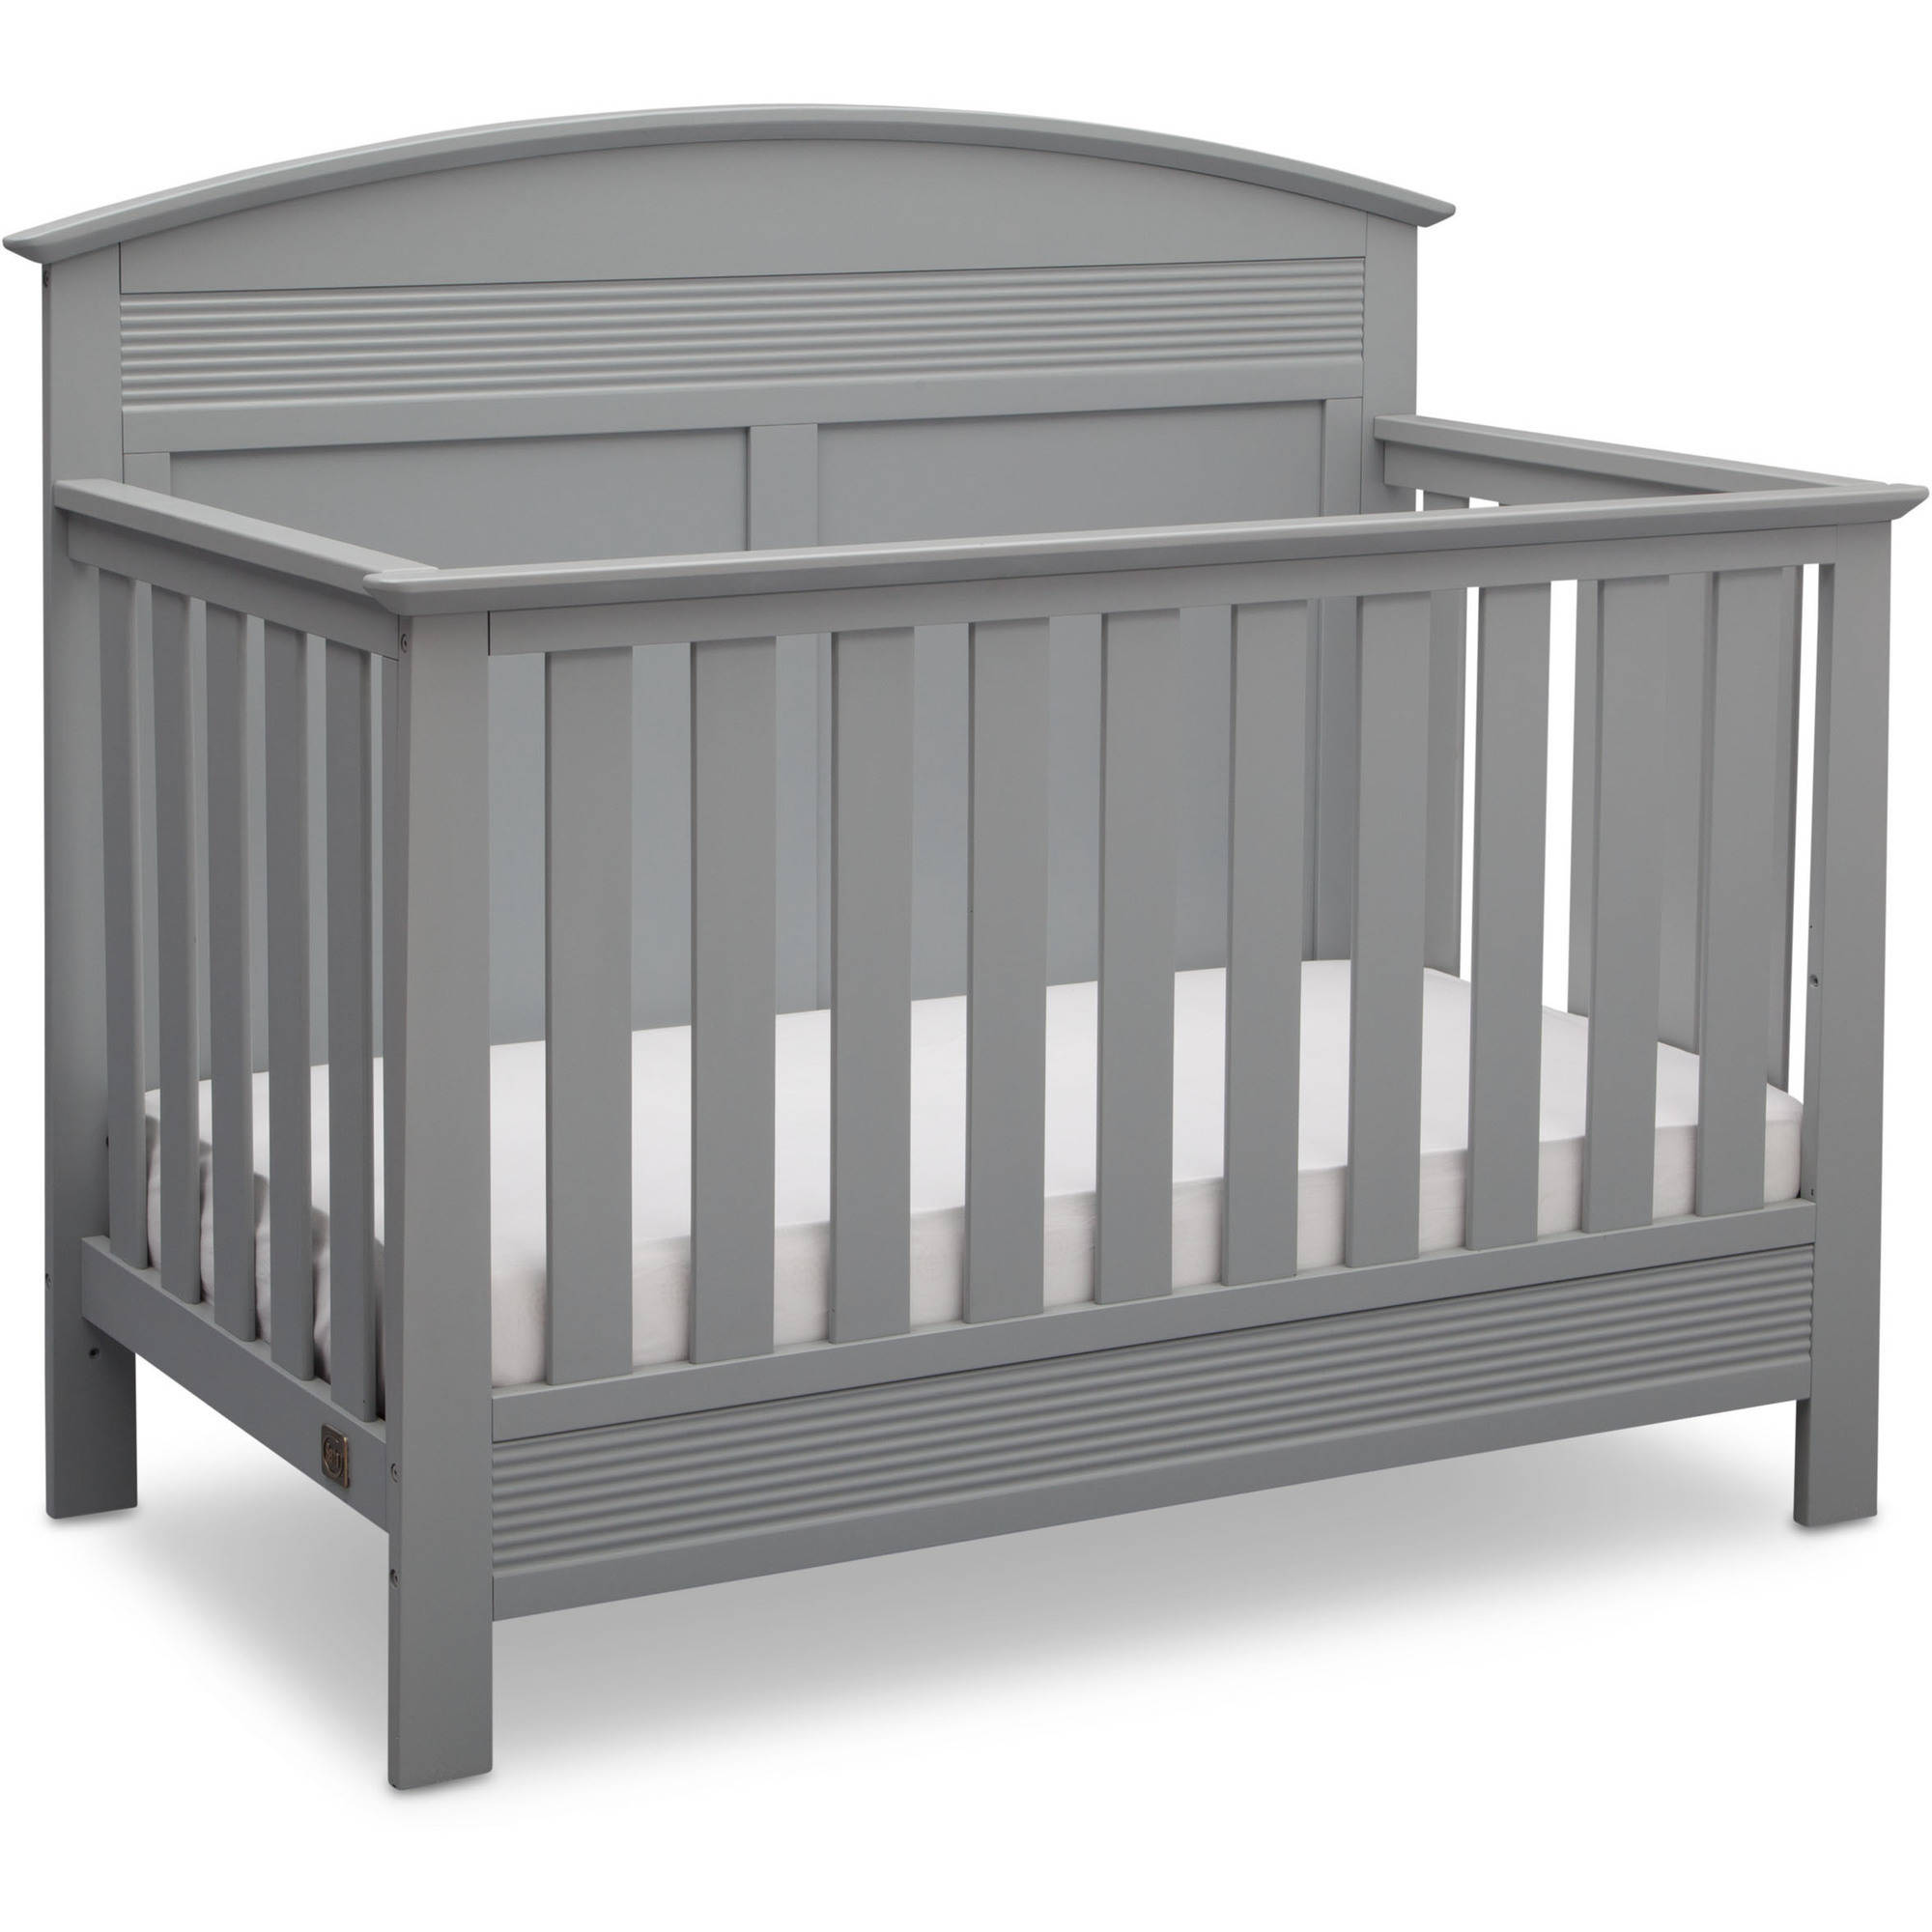 Serta Ashland 4-in-1 Convertible Crib, (Choose Your Finish)